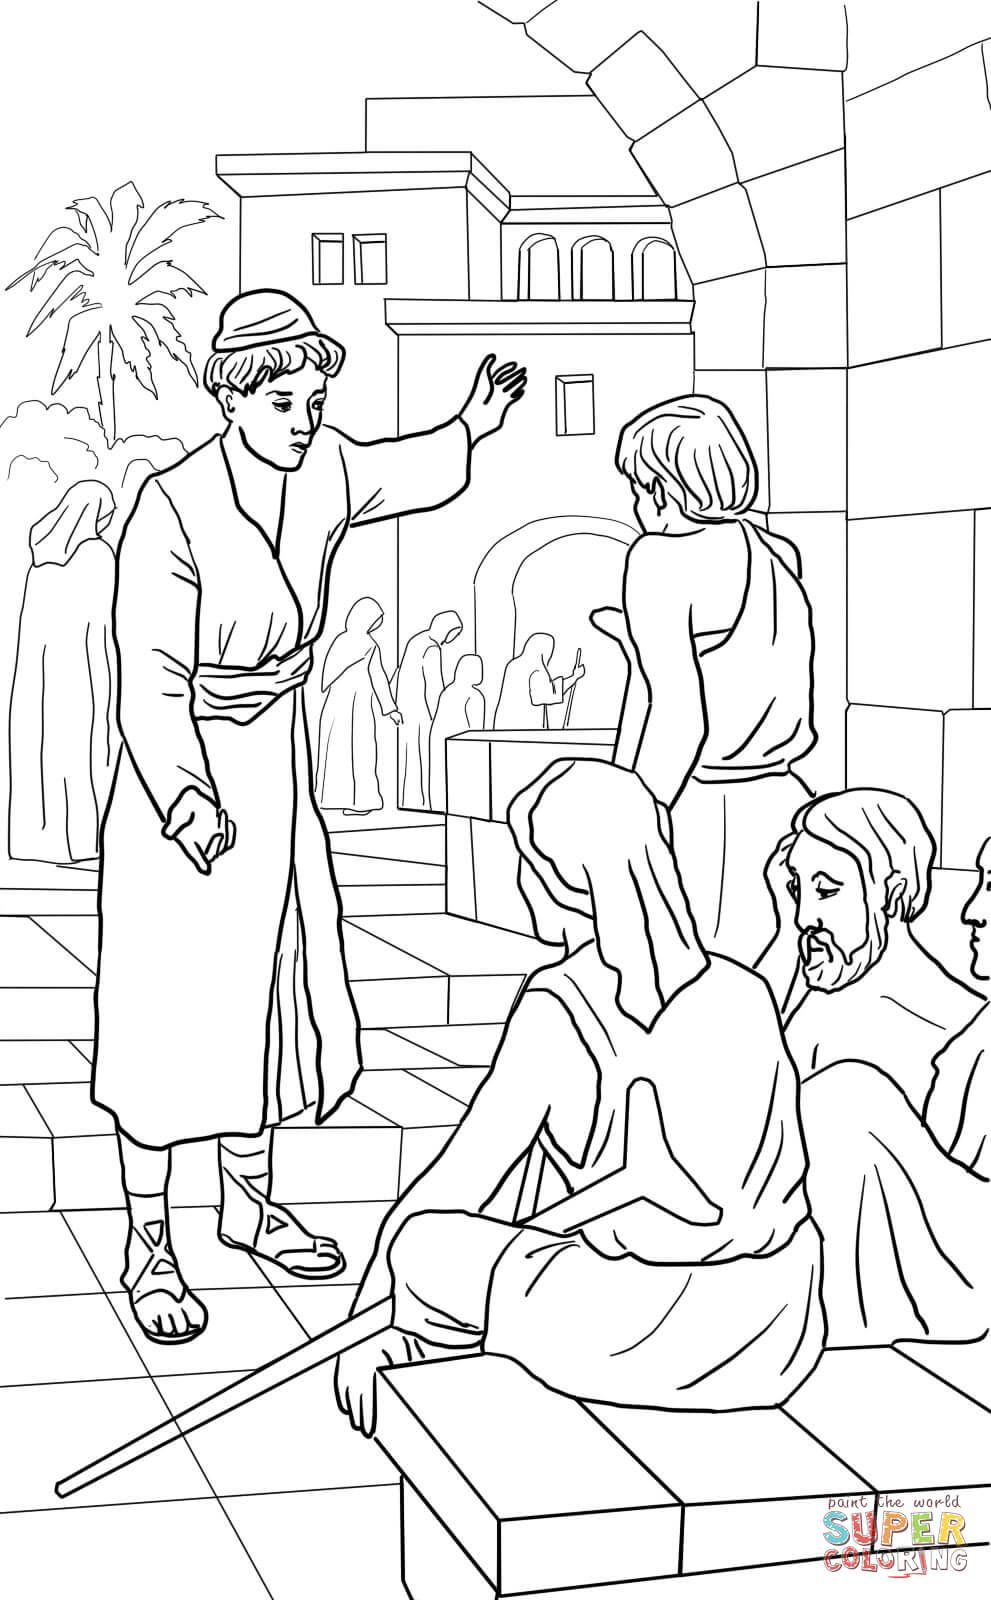 Parable Of The Great Banquet Coloring Page From Jesus 39